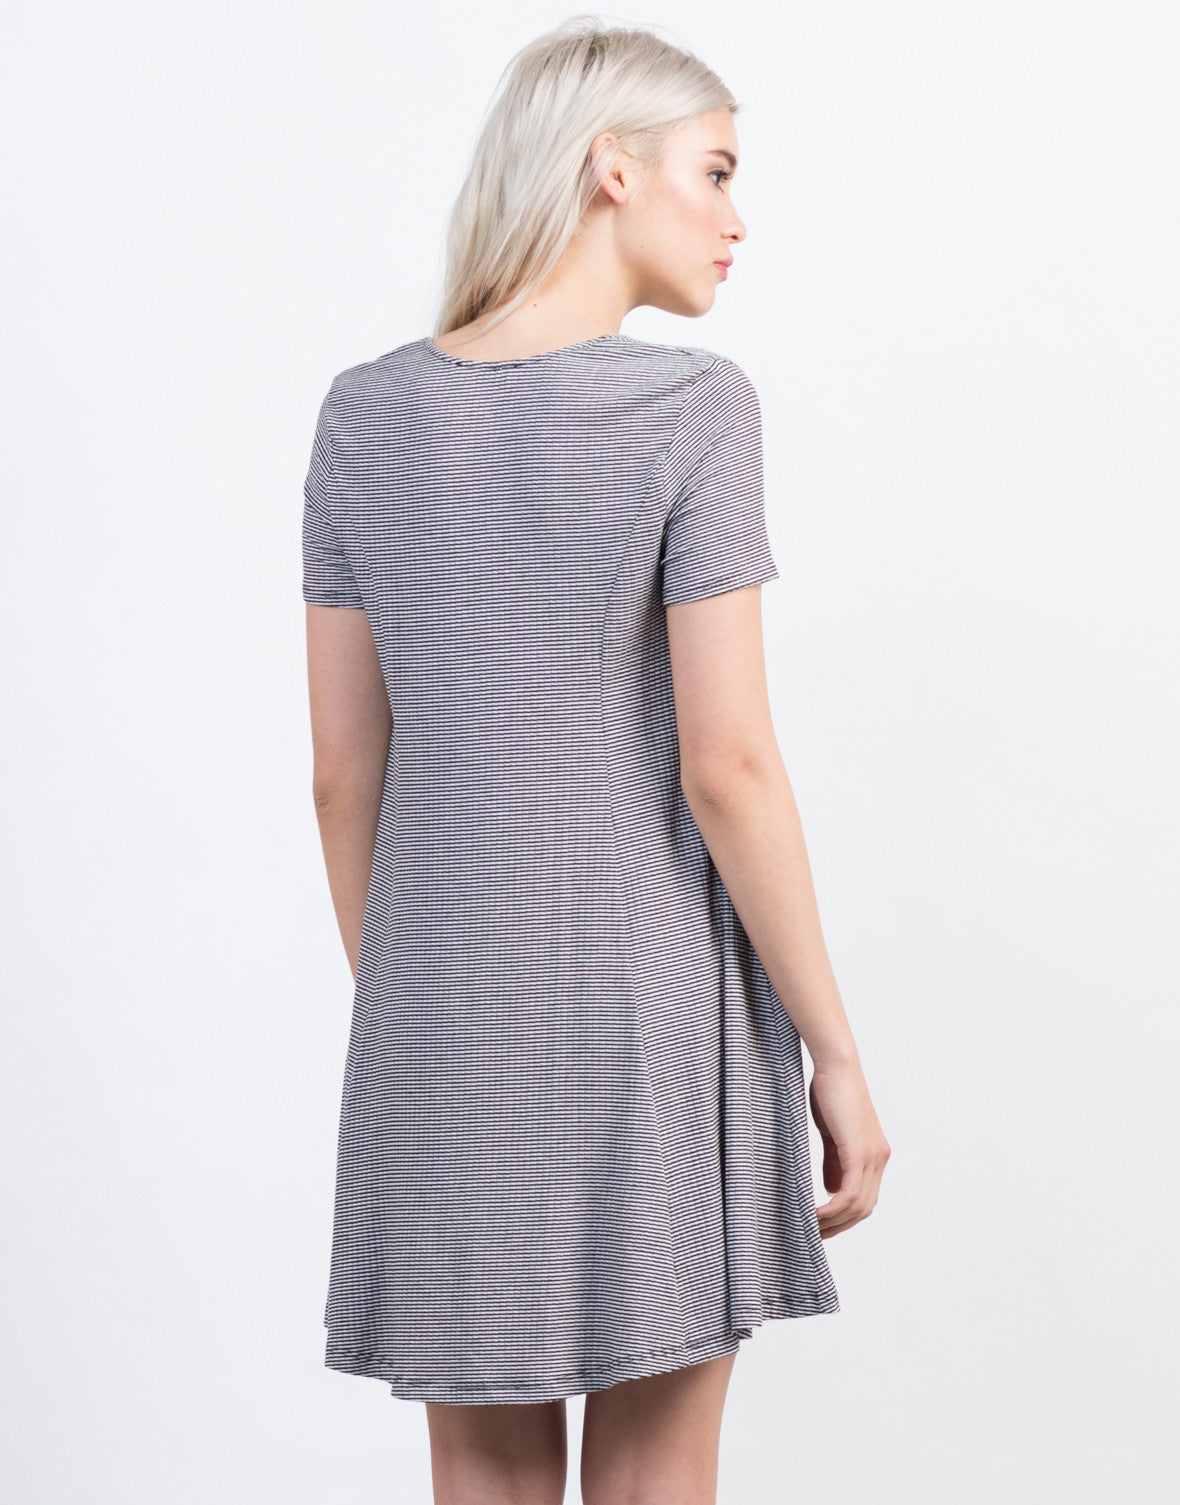 Back View of Lace Up Flared Tee Dress